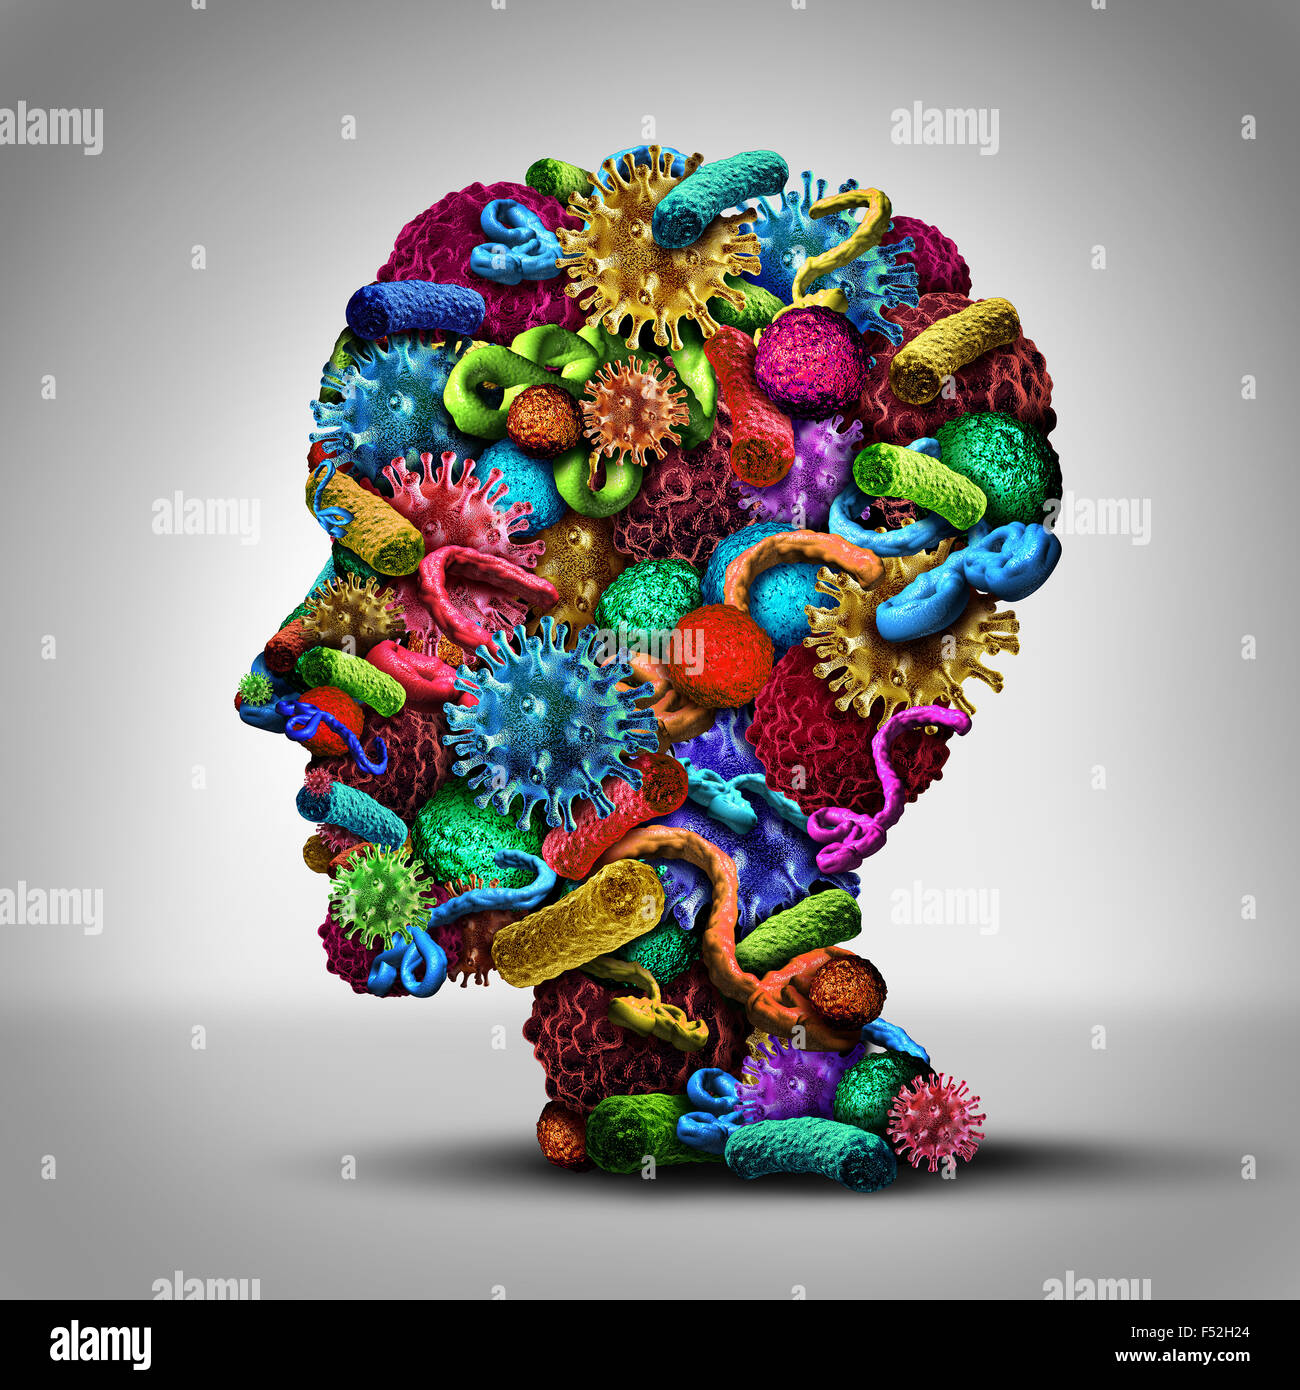 Disease thinking illness issues and medical concept as a group of cancer bacteria cells and ebola virus shaped as - Stock Image